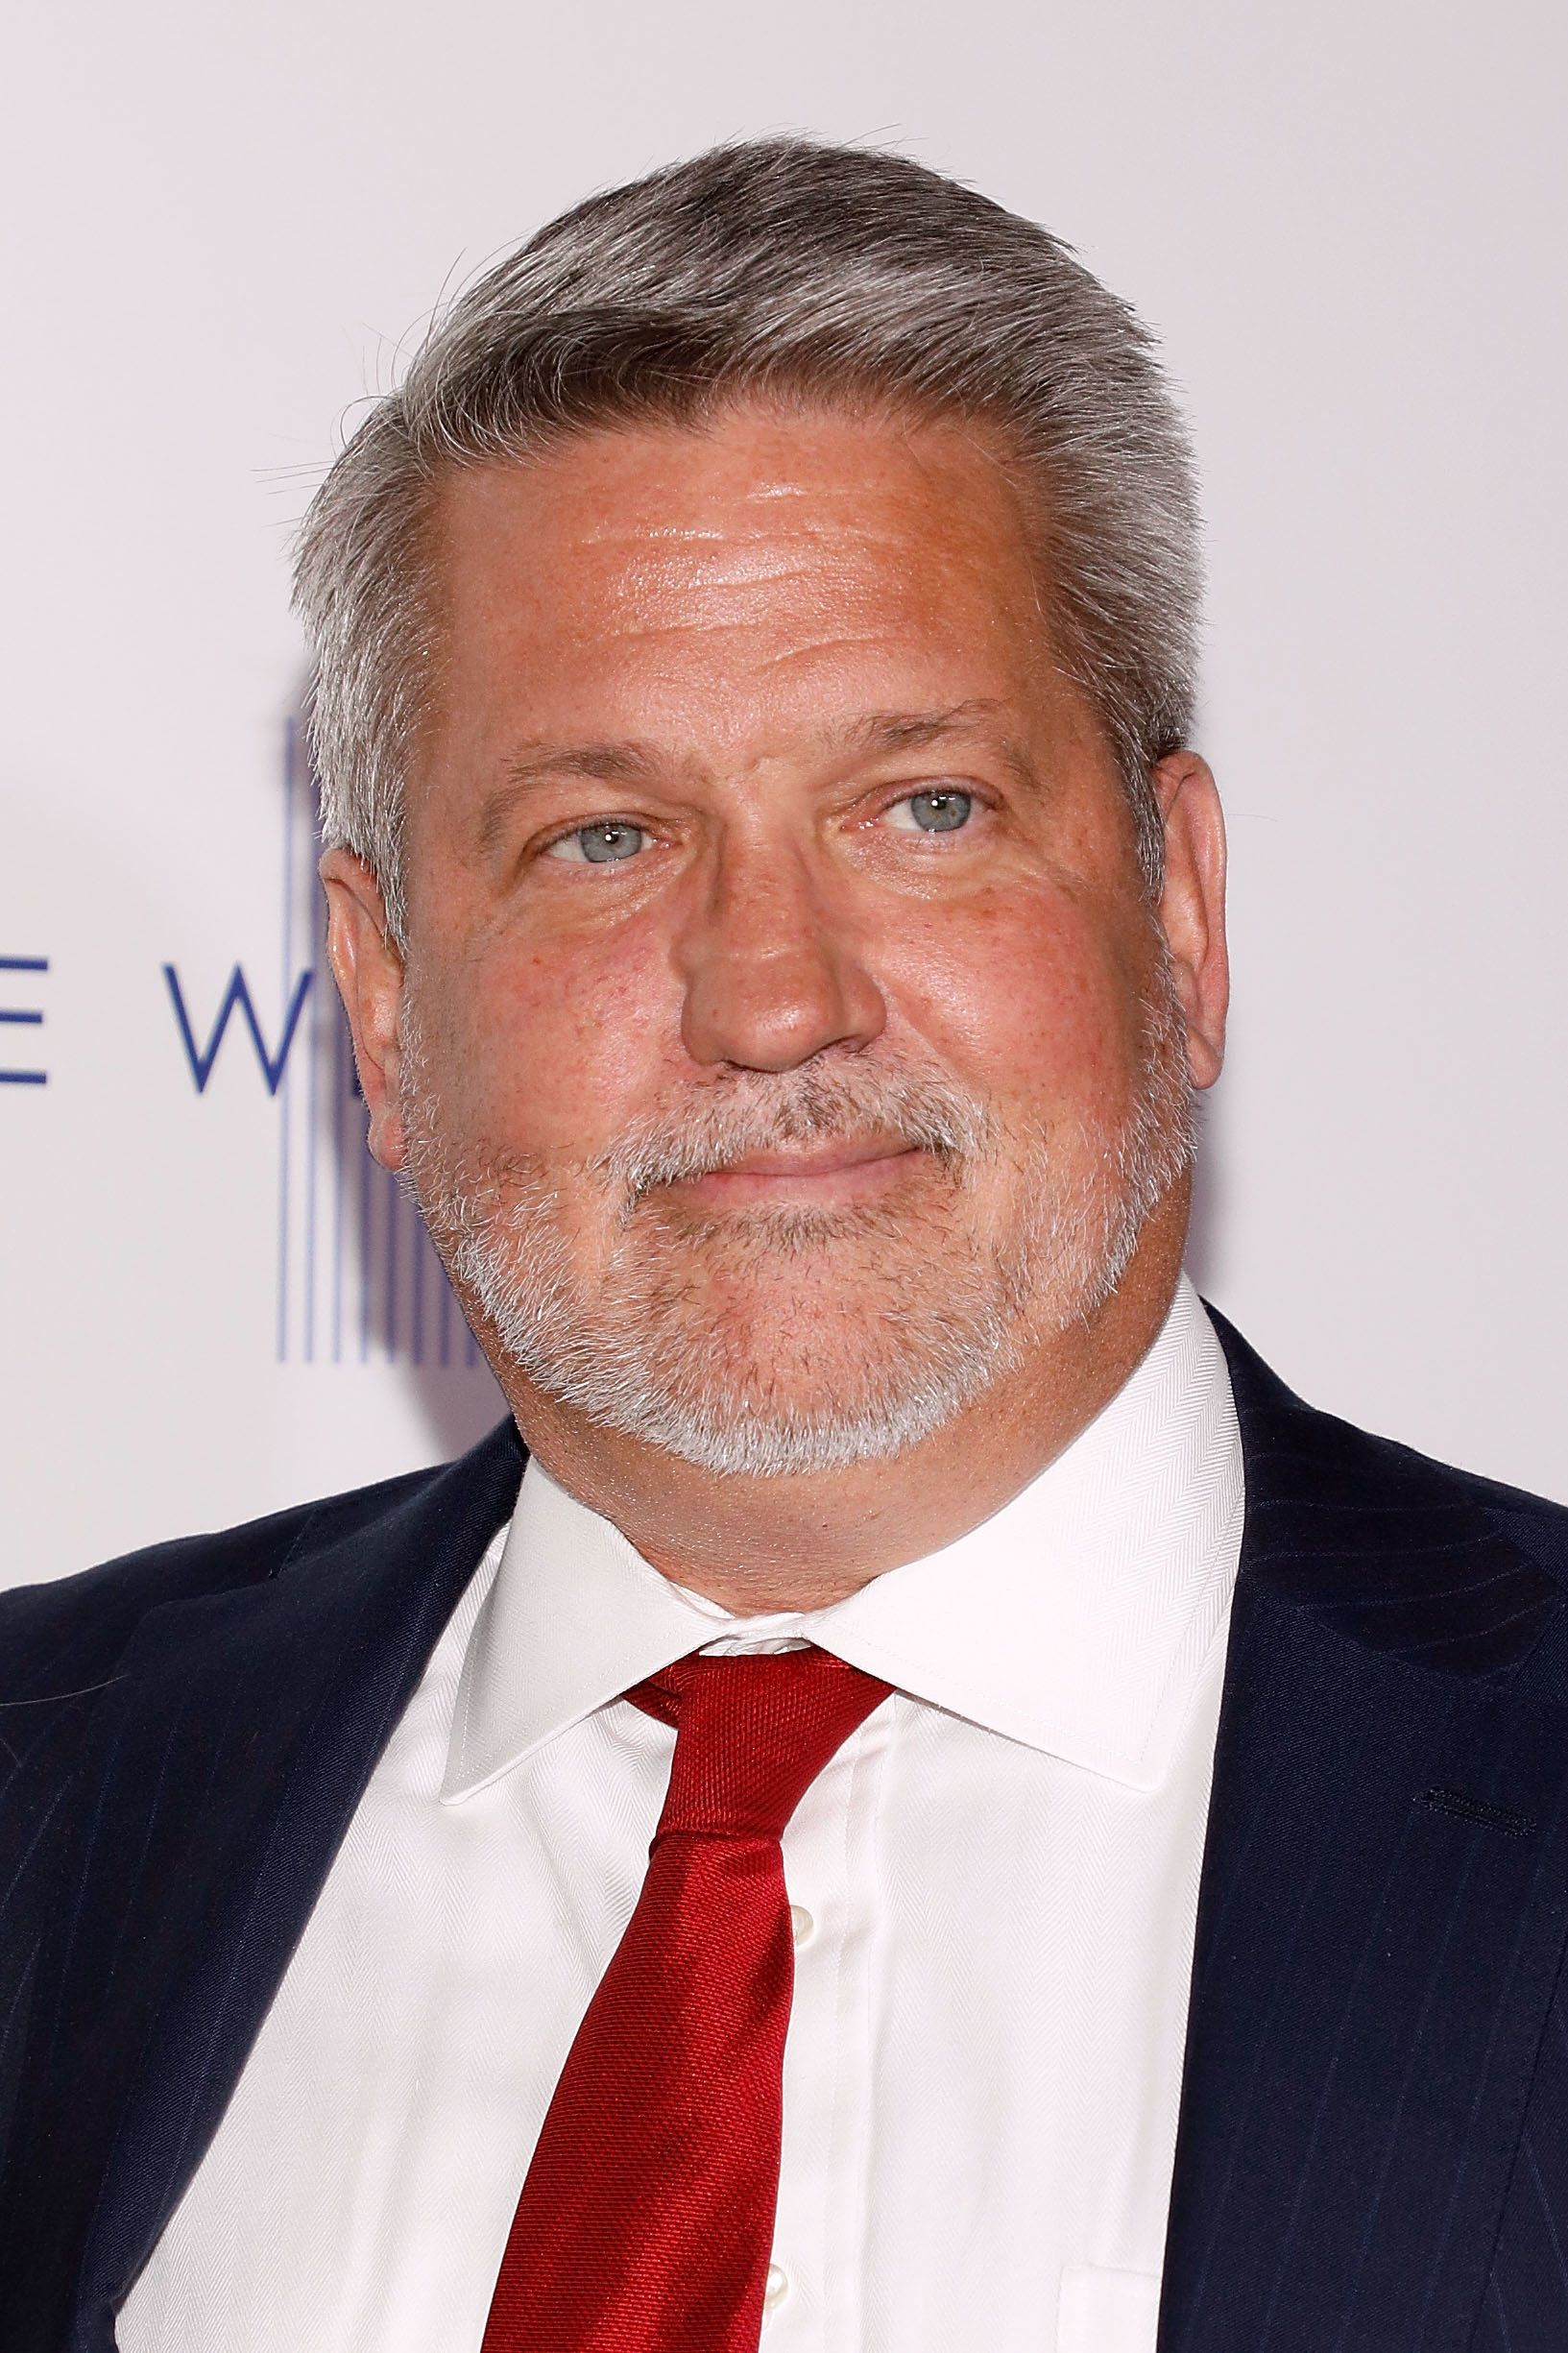 NEW YORK, NY - APRIL 13:  Bill Shine attends The Hollywood Reporter 35 Most Powerful People In Media 2017 at The Pool on April 13, 2017 in New York City.  (Photo by Taylor Hill/FilmMagic)